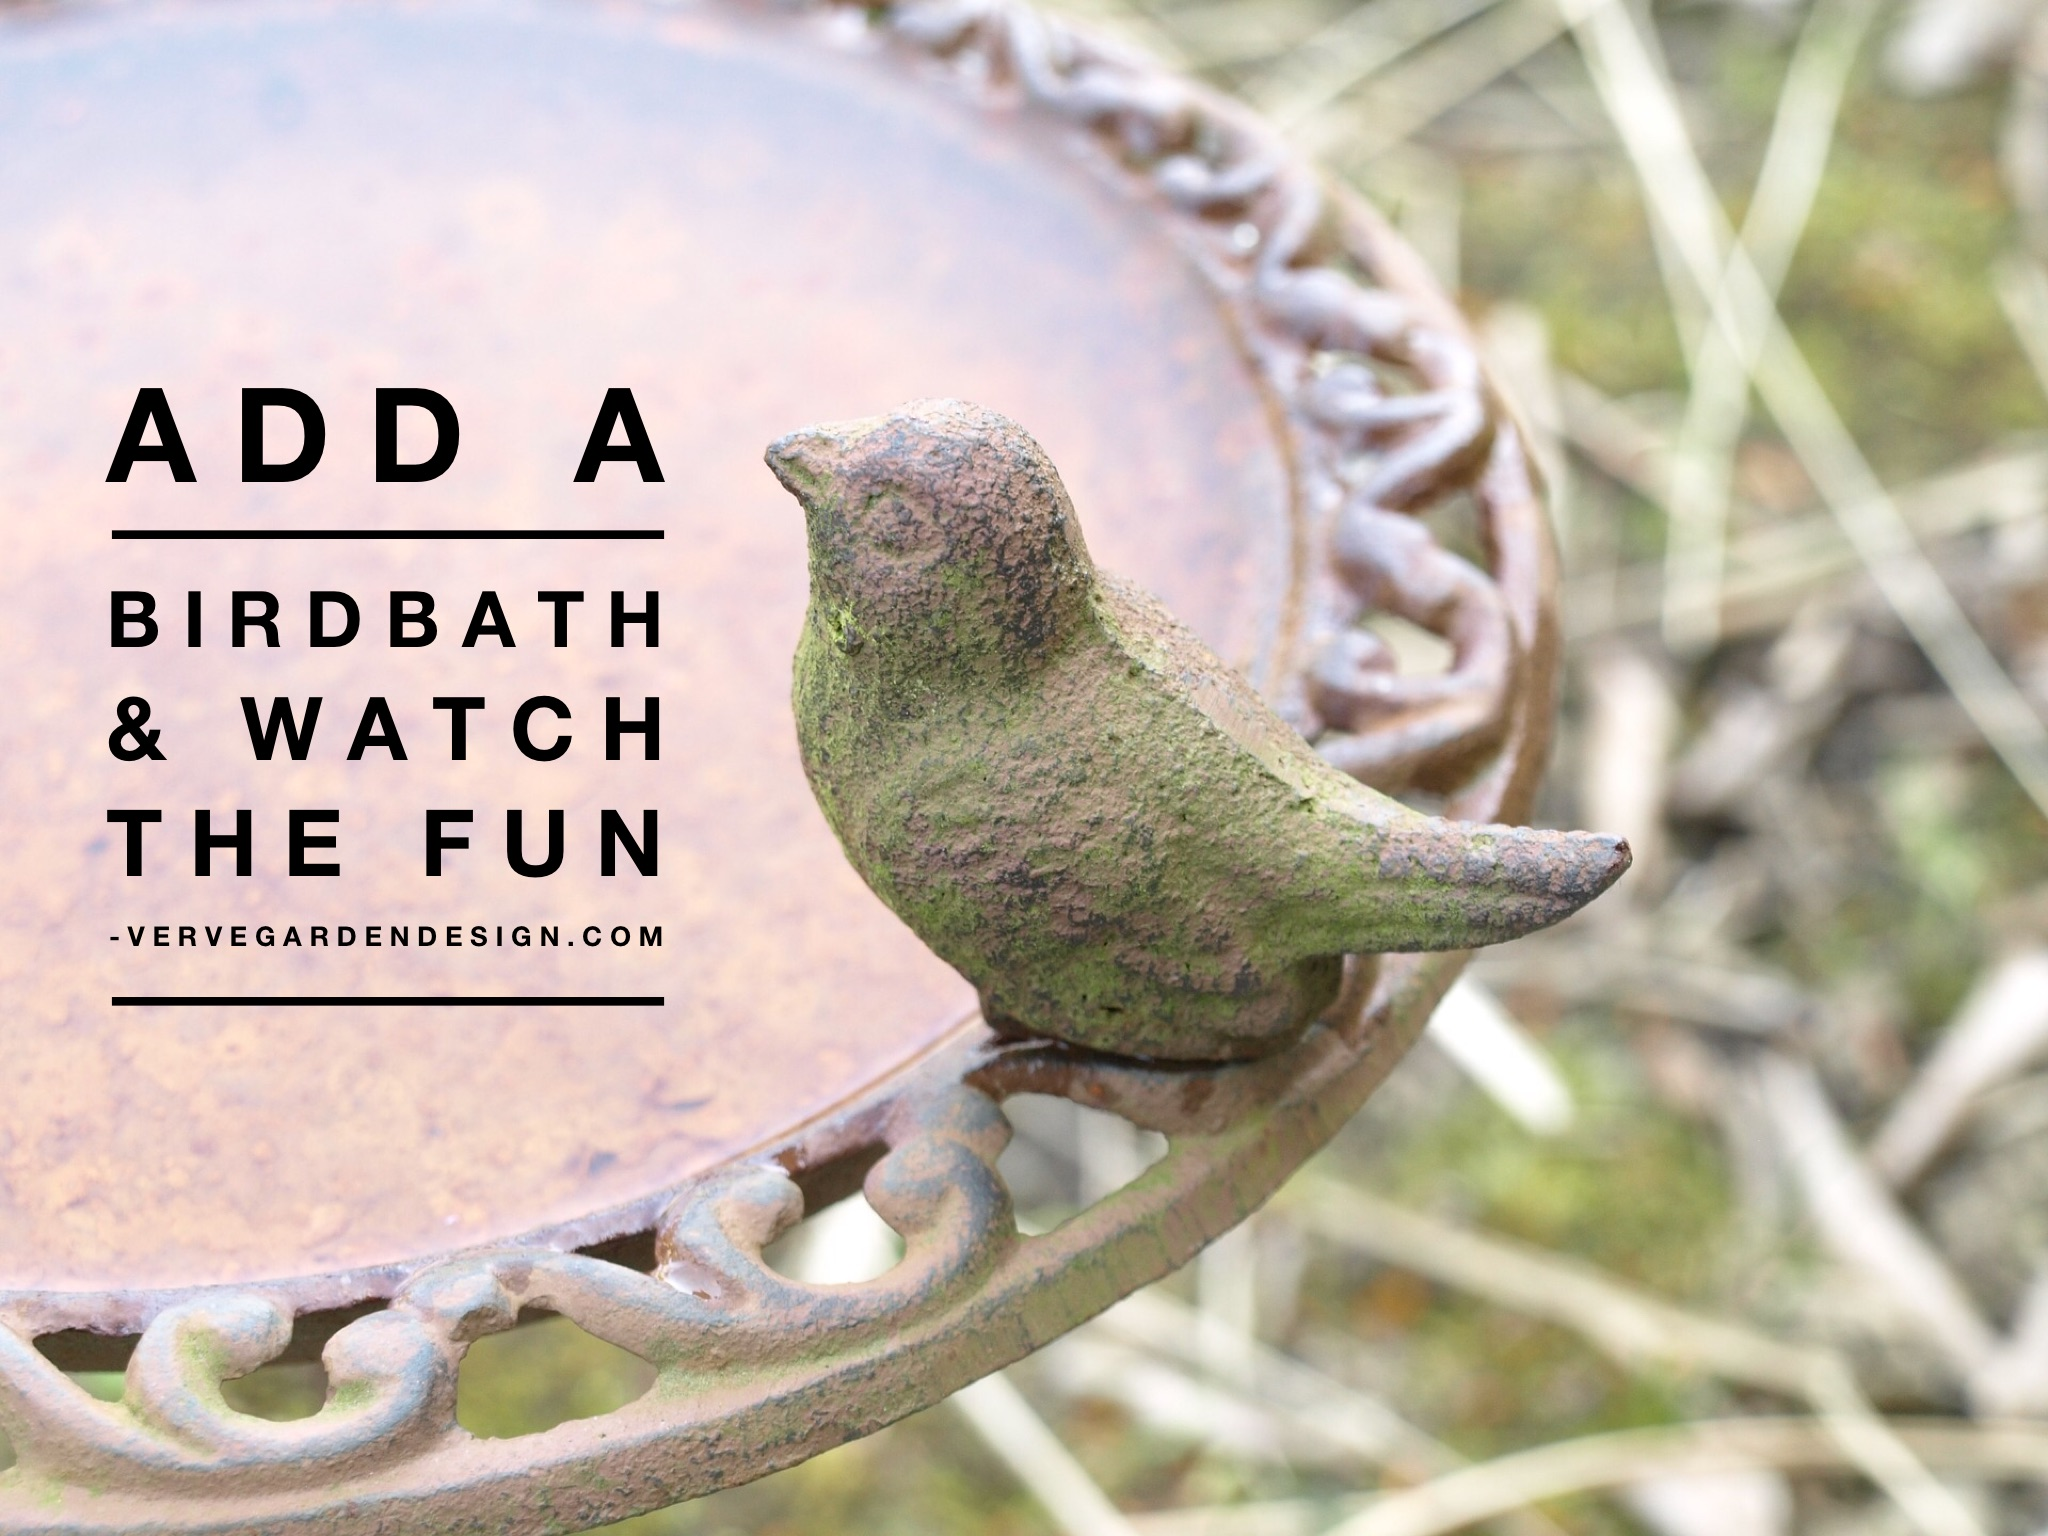 In hot weather, garden birds love a bath and are a joy to watch. Top up and change water regularly